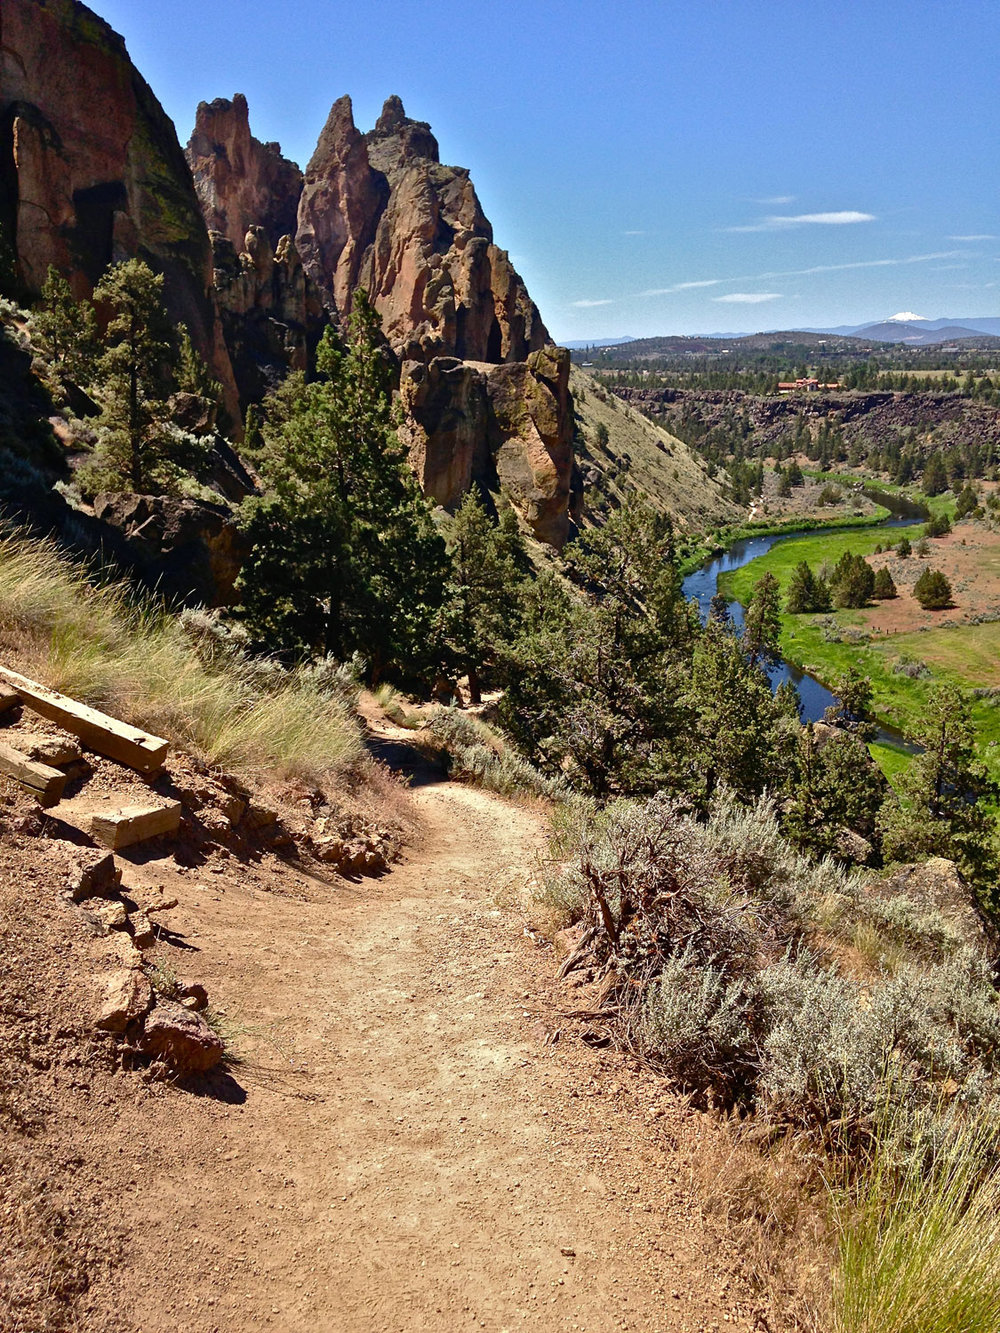 Follow the Mesa Verde Trail to the River Trail below at Smith Rock State Park.